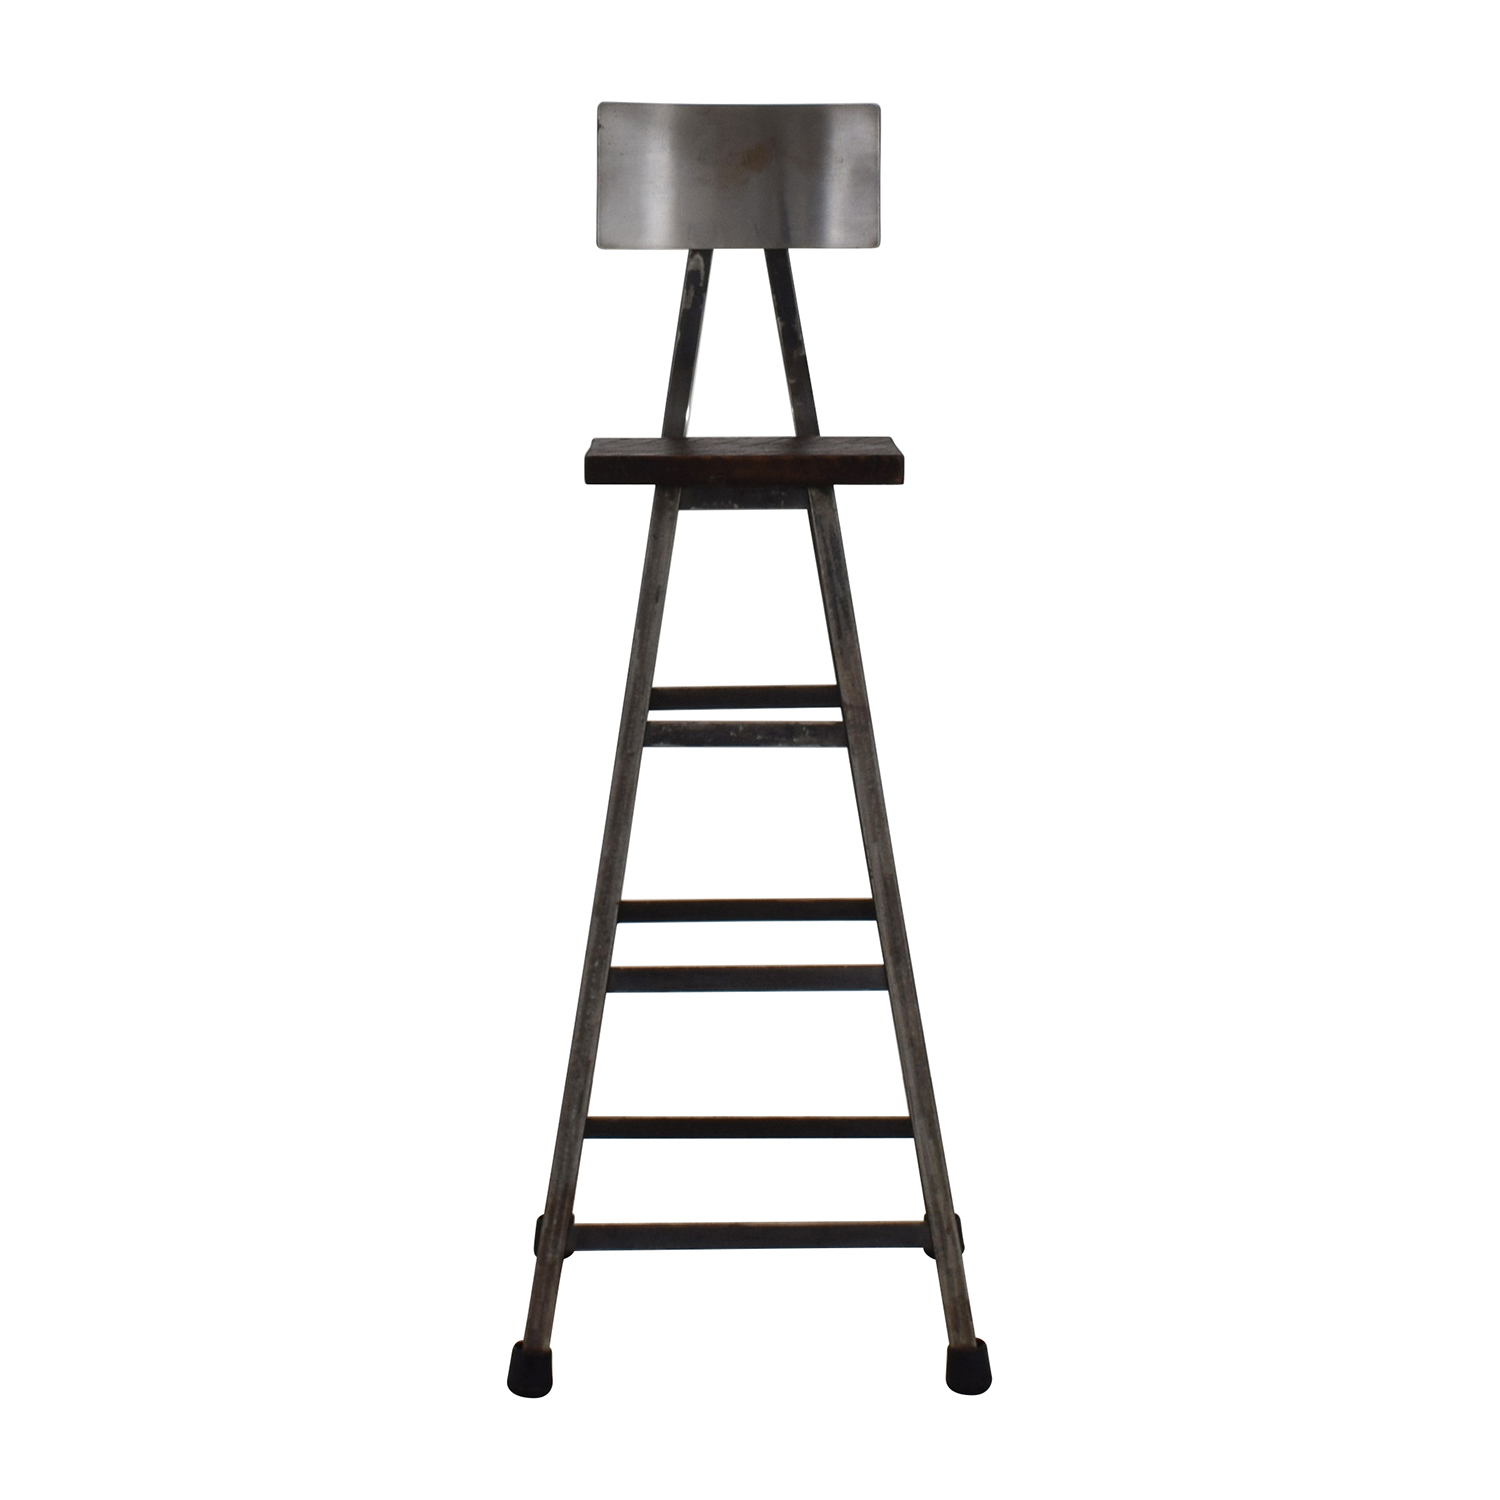 Awesome 78 Off Custom Metal High Bar Stool Chairs Pabps2019 Chair Design Images Pabps2019Com